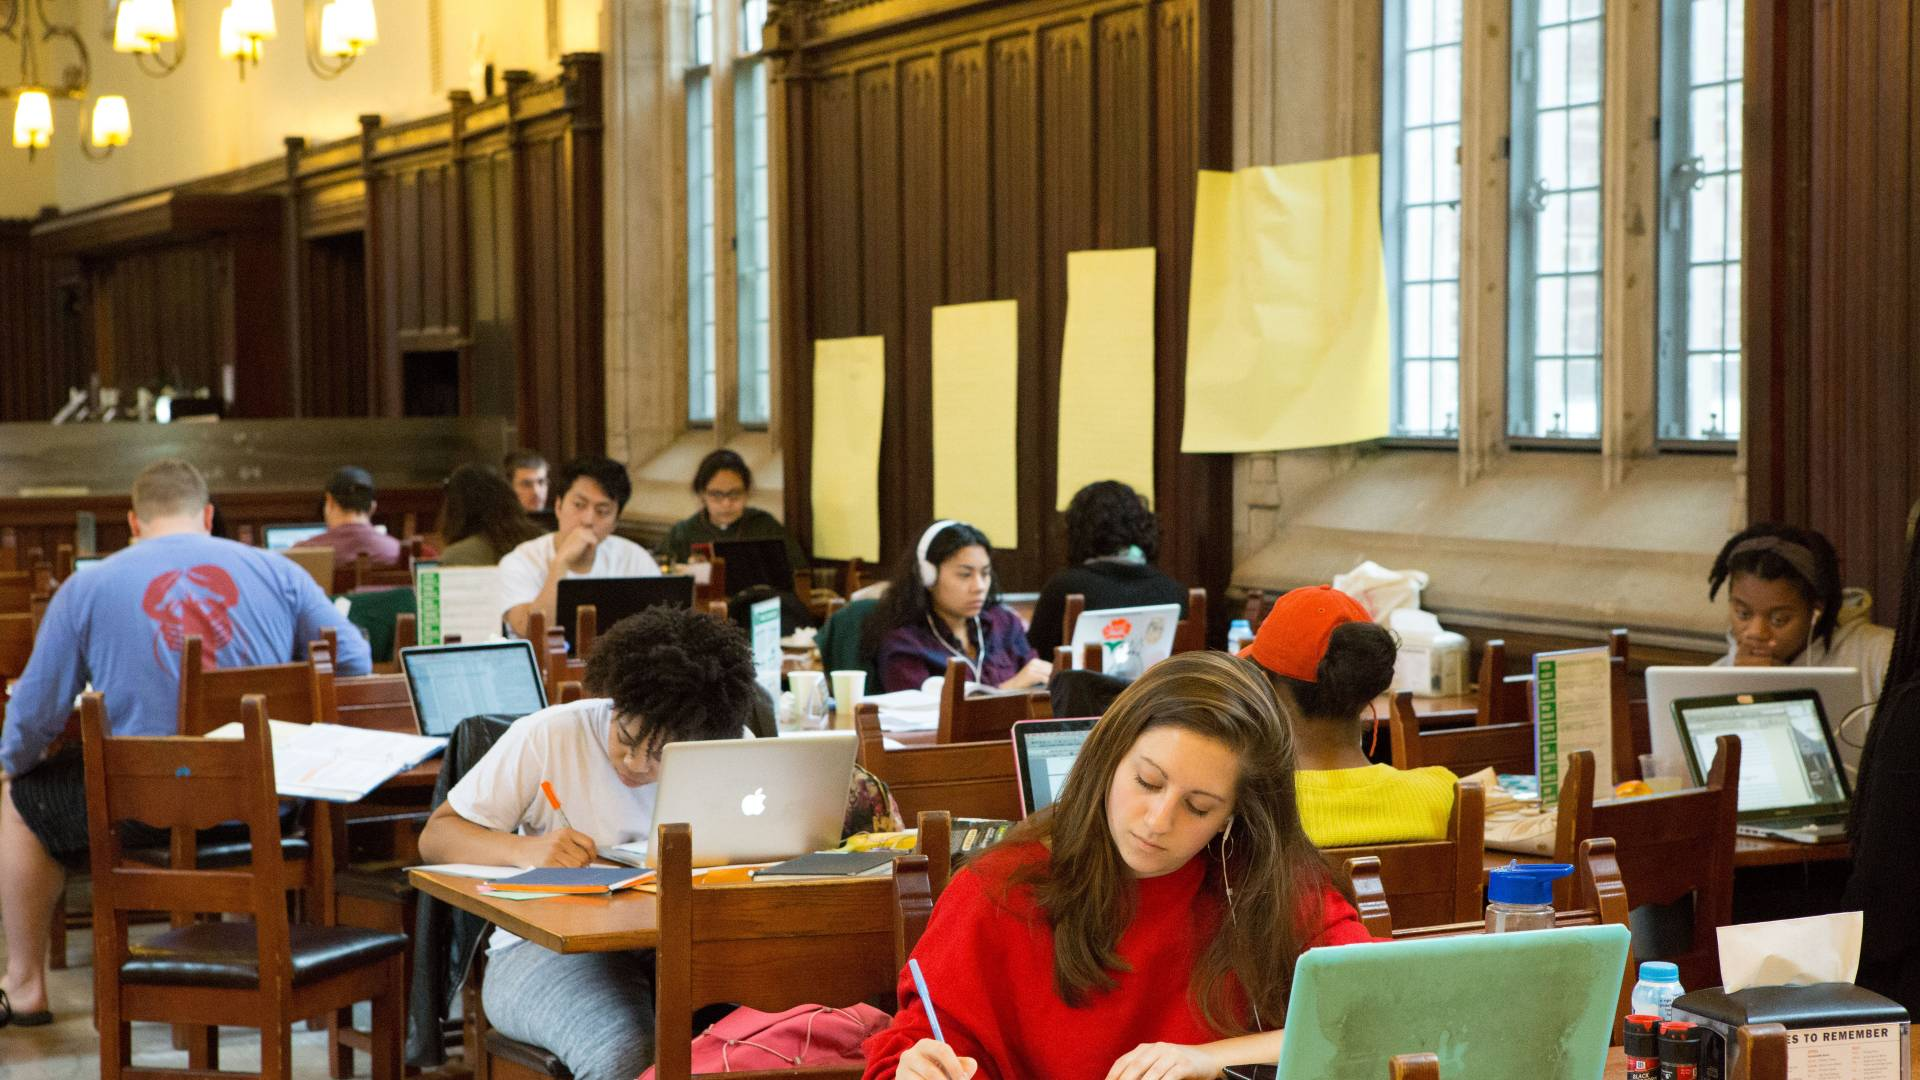 Students studying at Rockefeller College